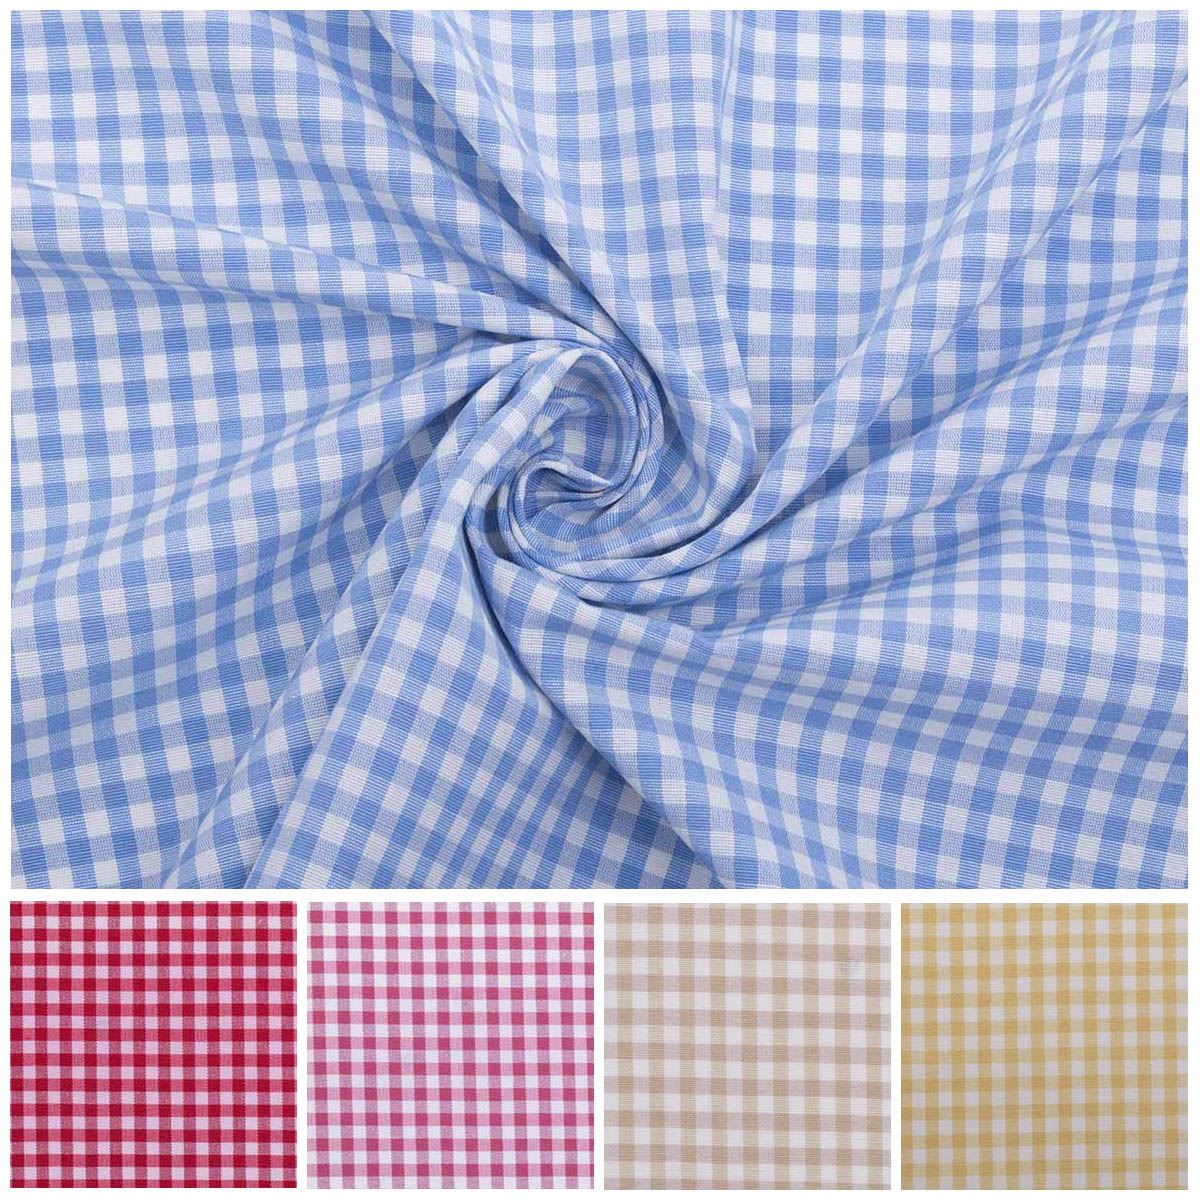 FREE Postage and Packaging. Polycotton dress fabric-Contract